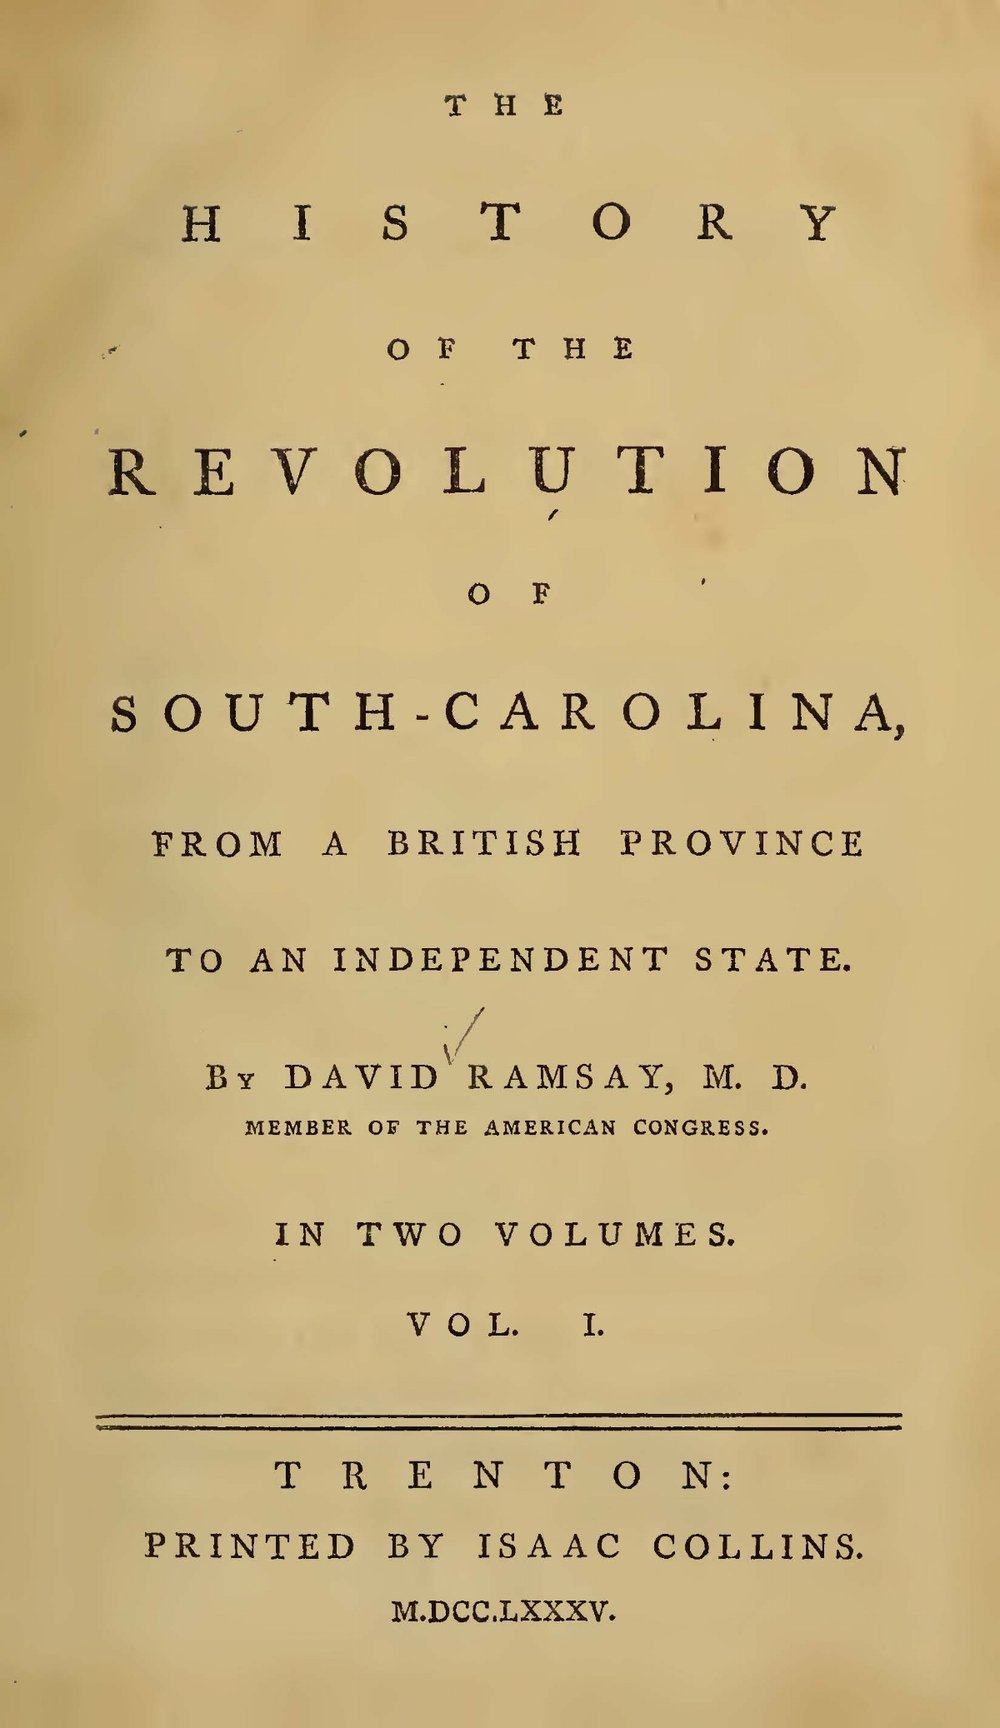 Ramsay, David, The History of the Revolution of South Carolina, Vol. 1 Title Page.jpg